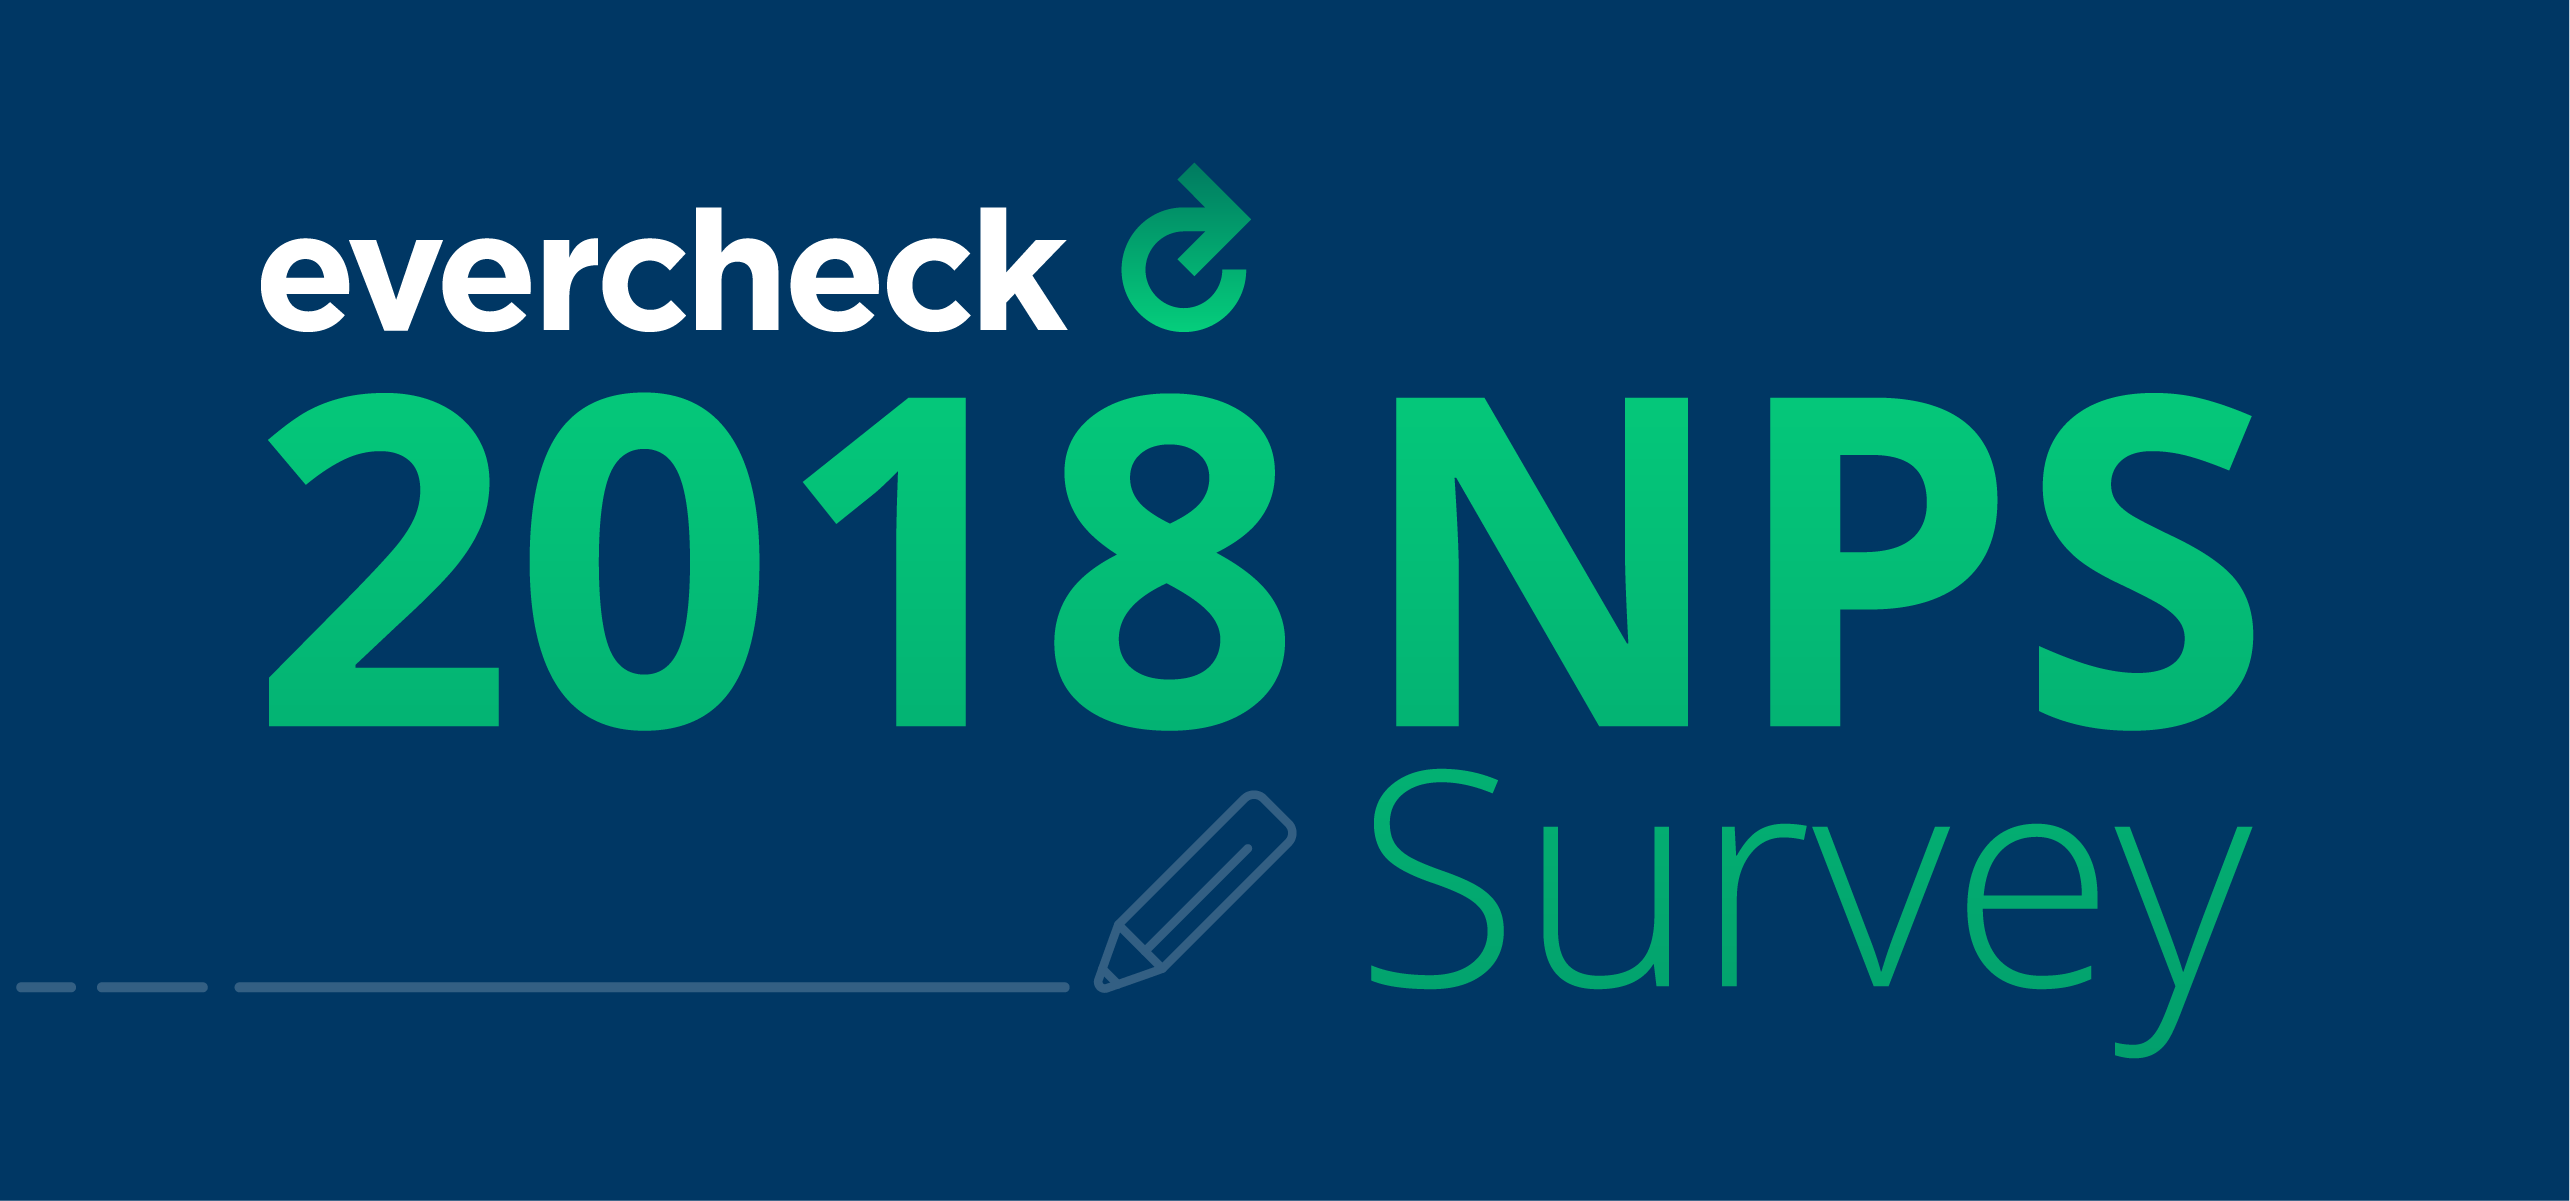 We Just Completed Our 2018 Client Satisfaction Survey. Here's What We Learned.